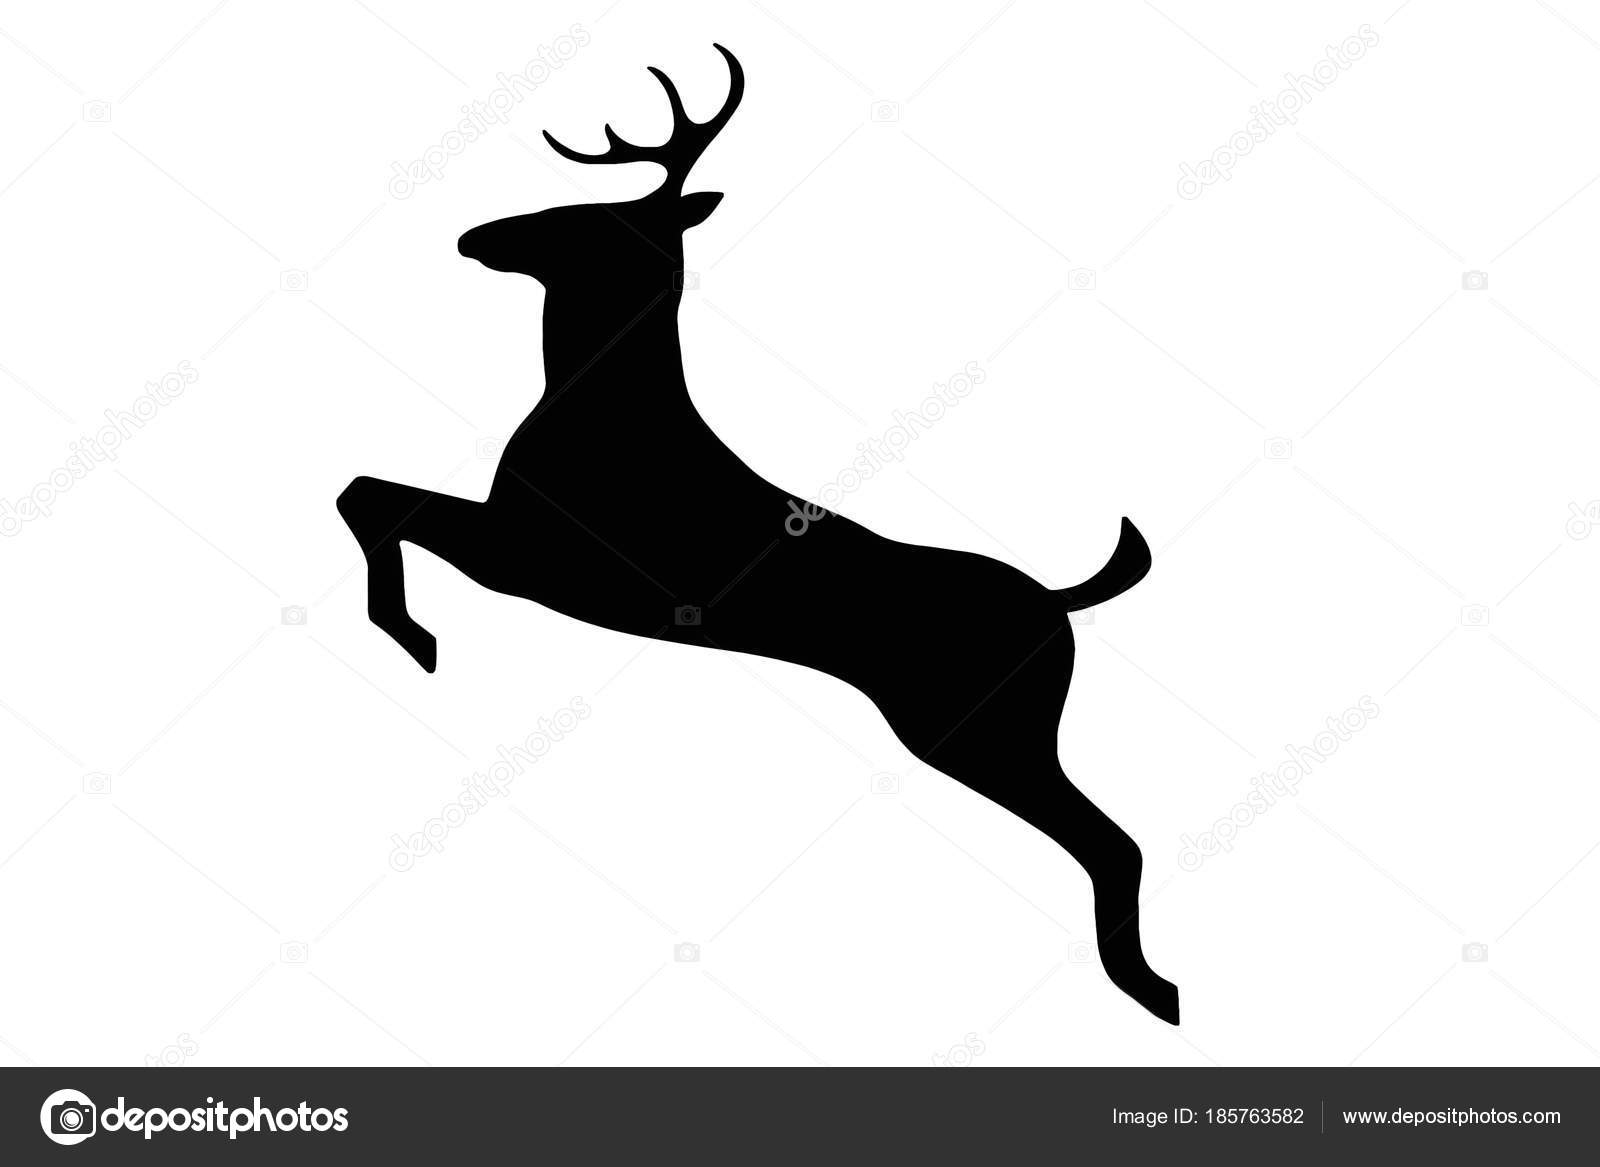 Clipart: deer black and white.